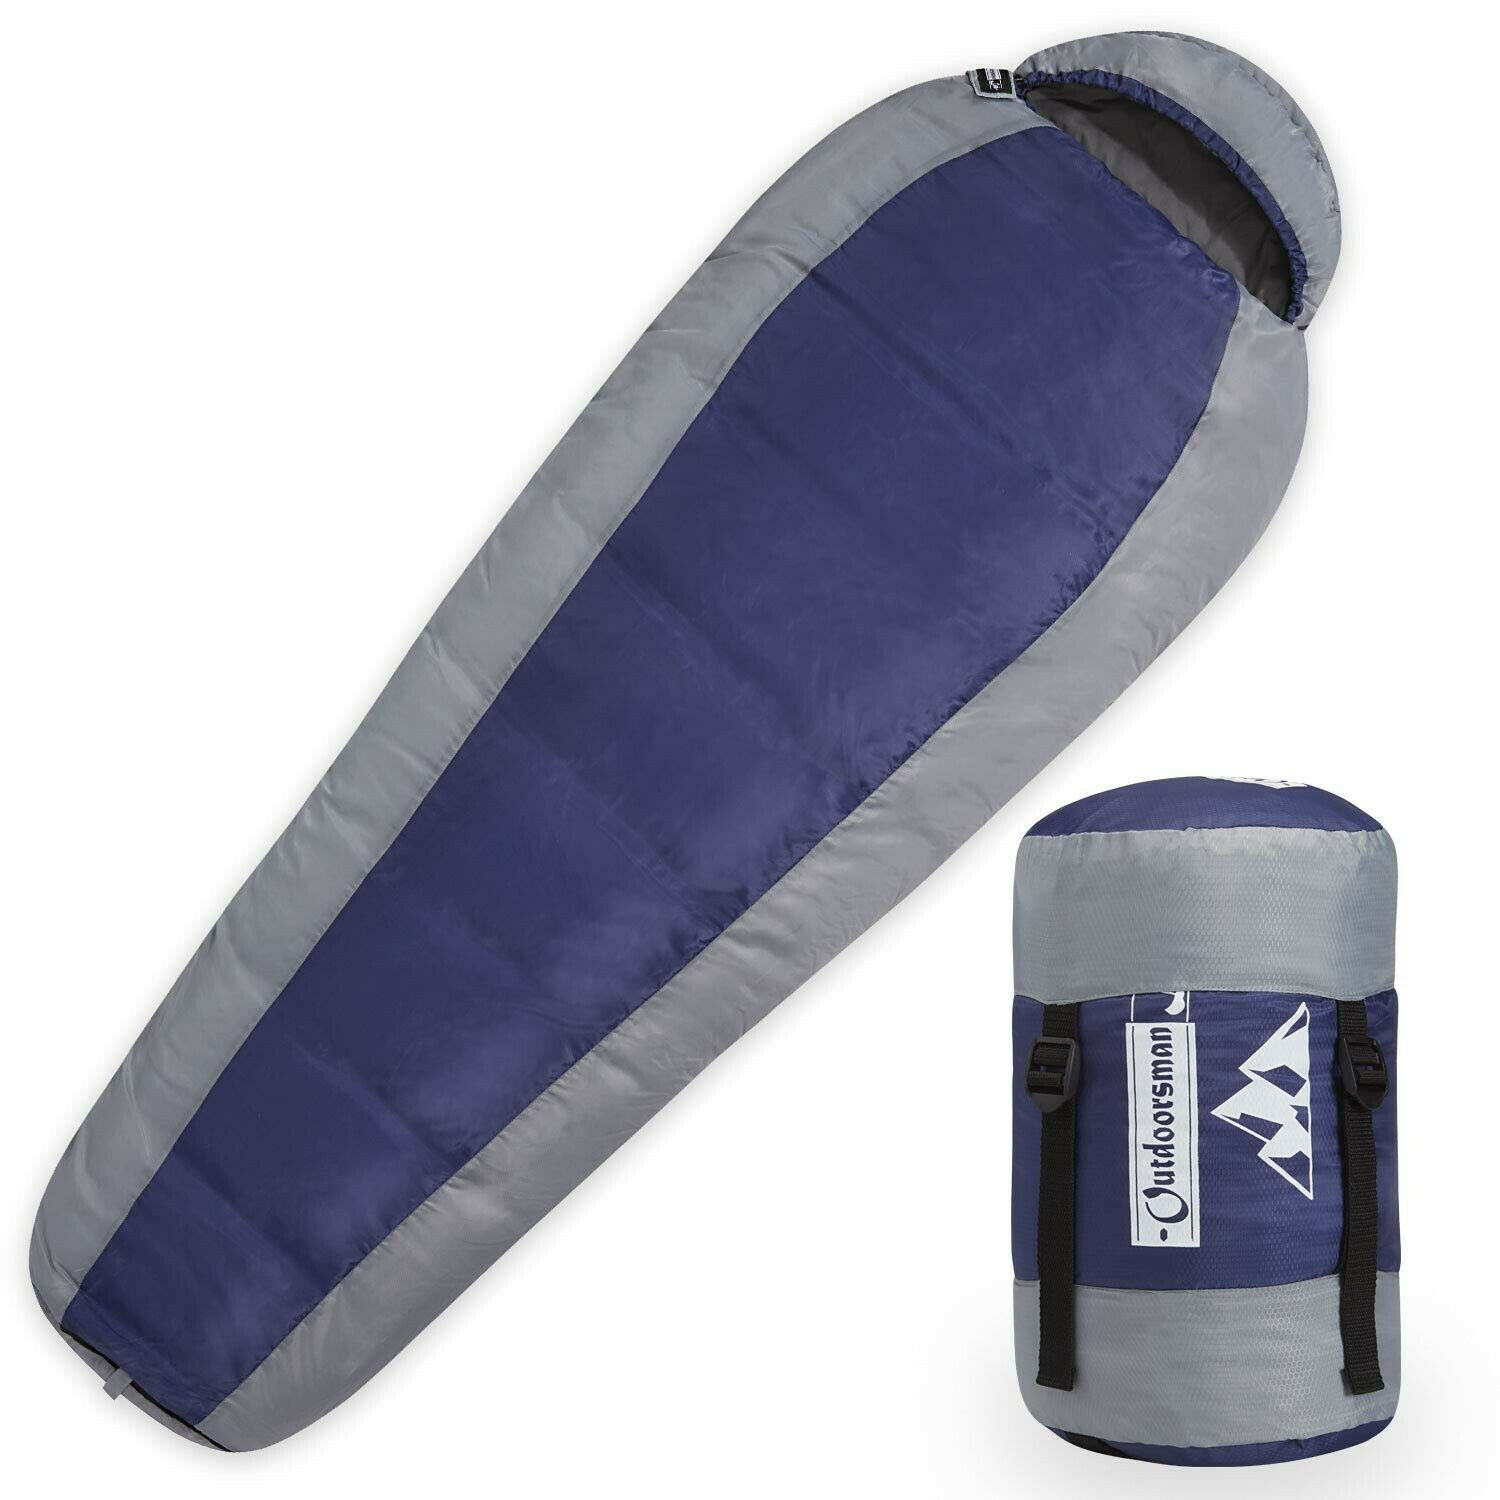 Outdoorsman Lab Camping Accessories – 87  x 32   x 22  Mummy Sleeping Bag with...  more affordable